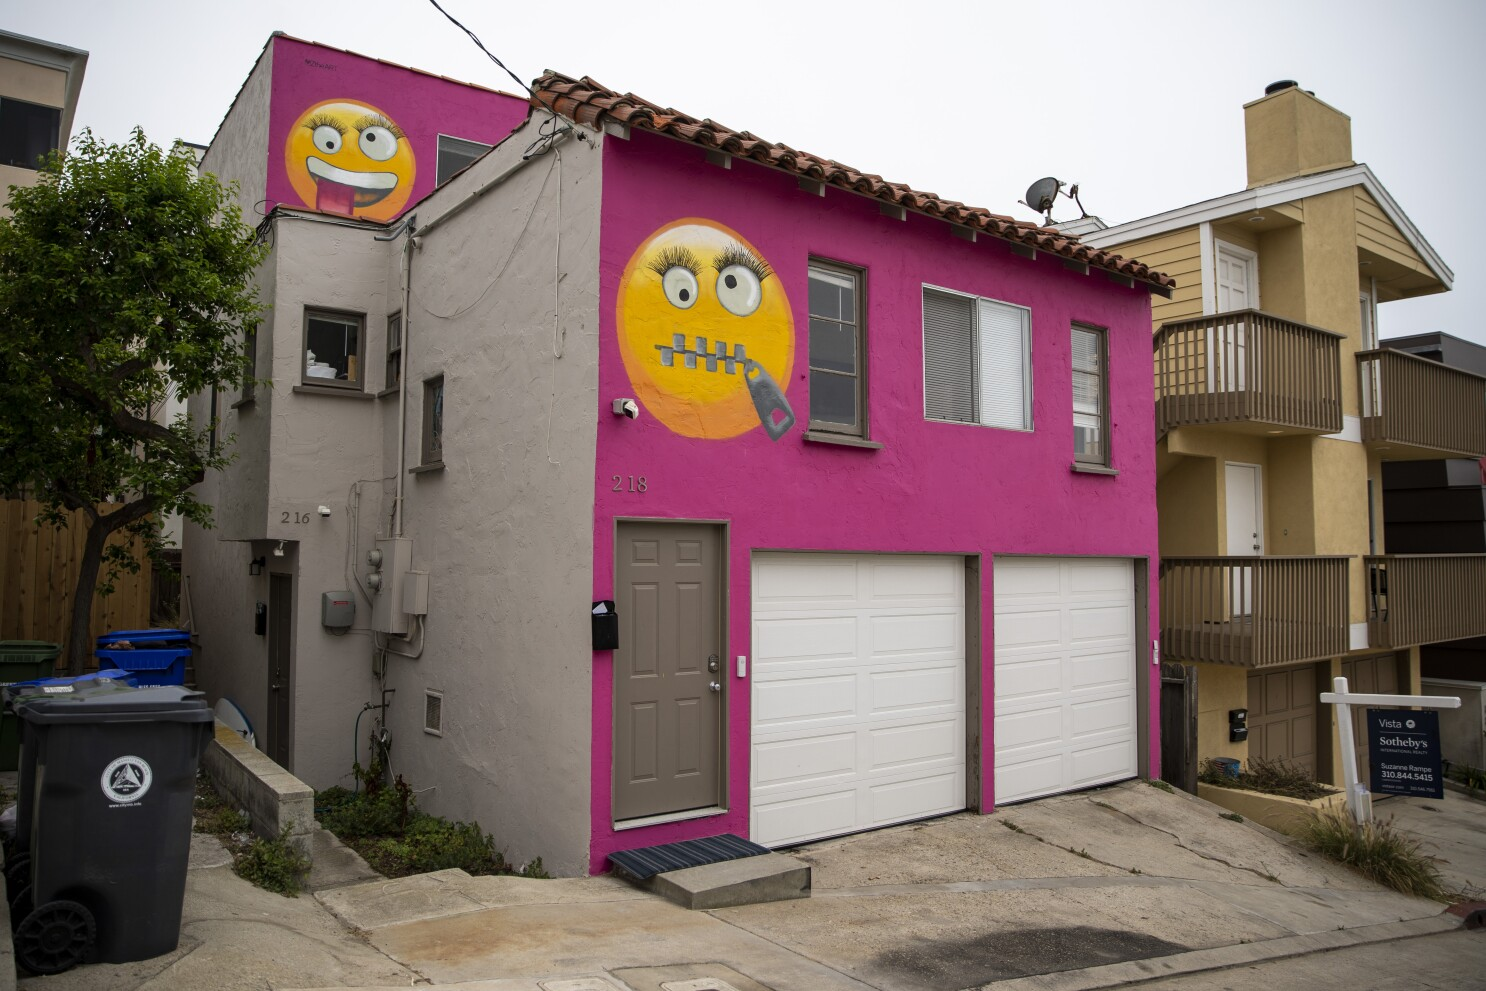 A pink house with giant emojis is not a municipal crisis